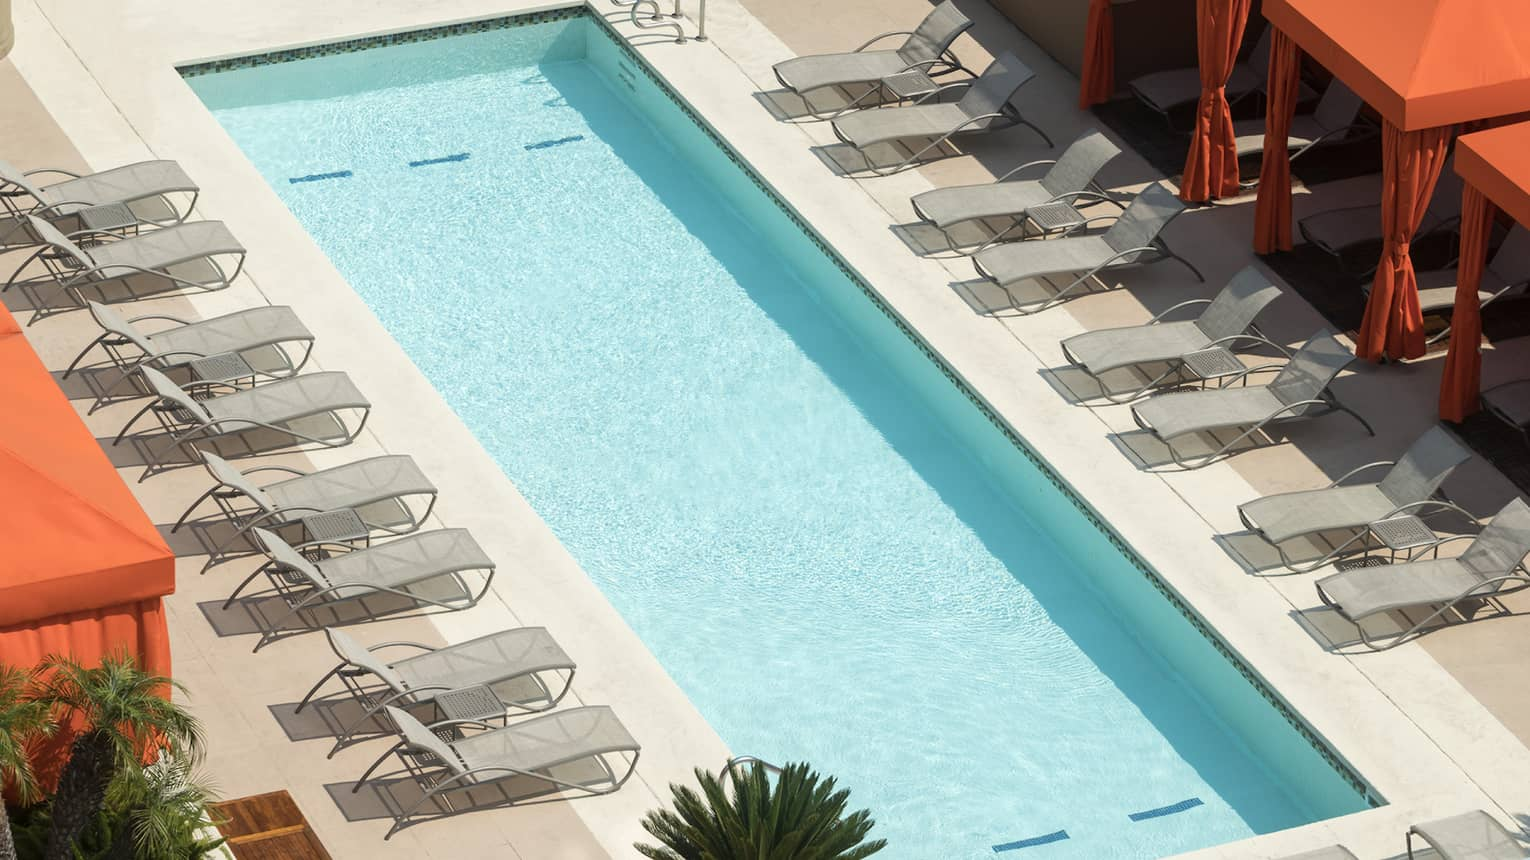 Aerial view of outdoor rooftop swimming pool lined with lounge chairs, cabanas